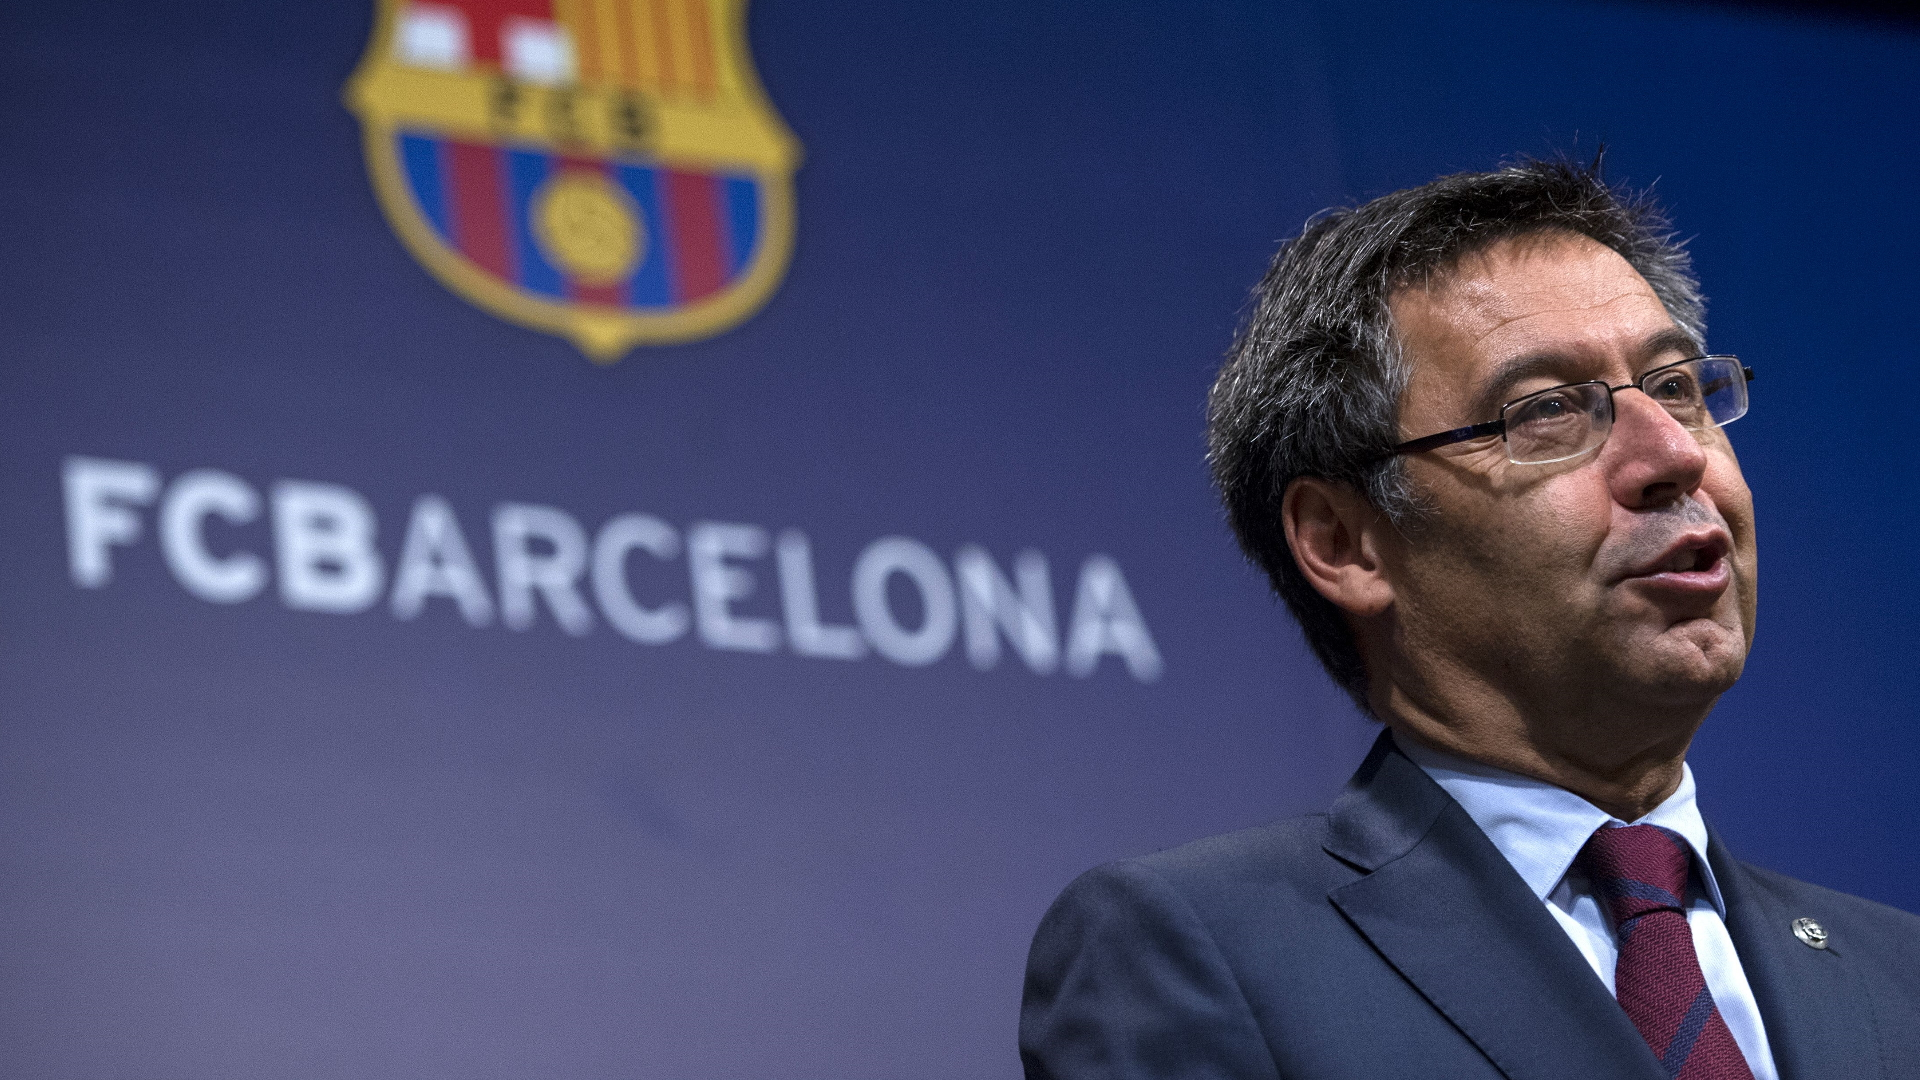 Barcelona announce record income projection of over €1 billion